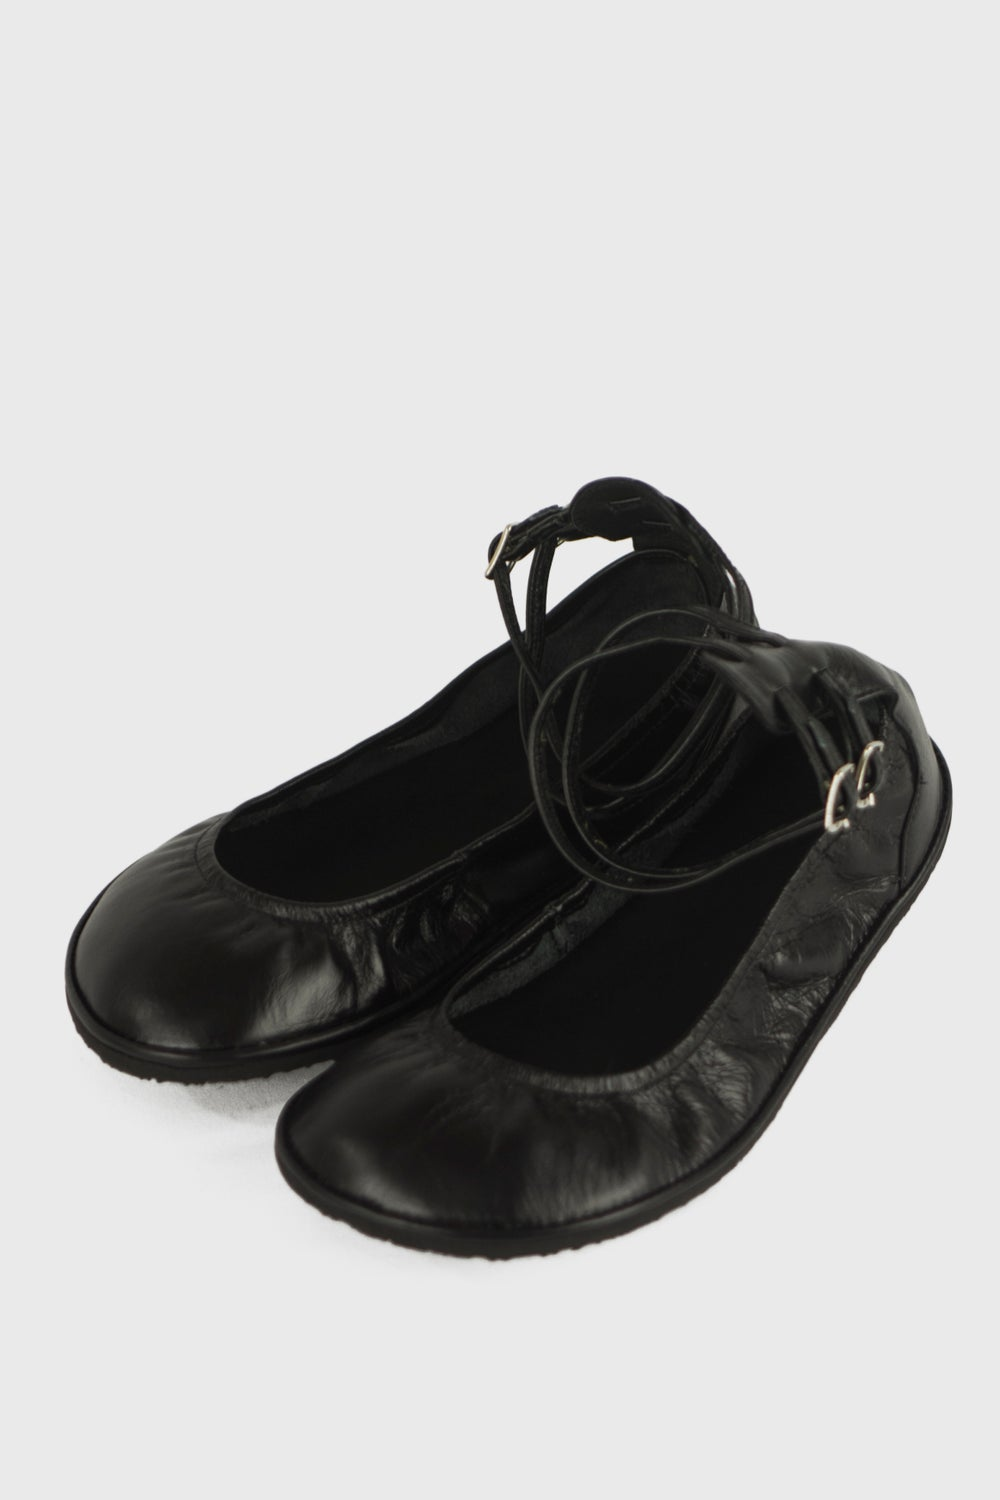 Image of Ballet flats - Two ankle straps - 35 EU wide